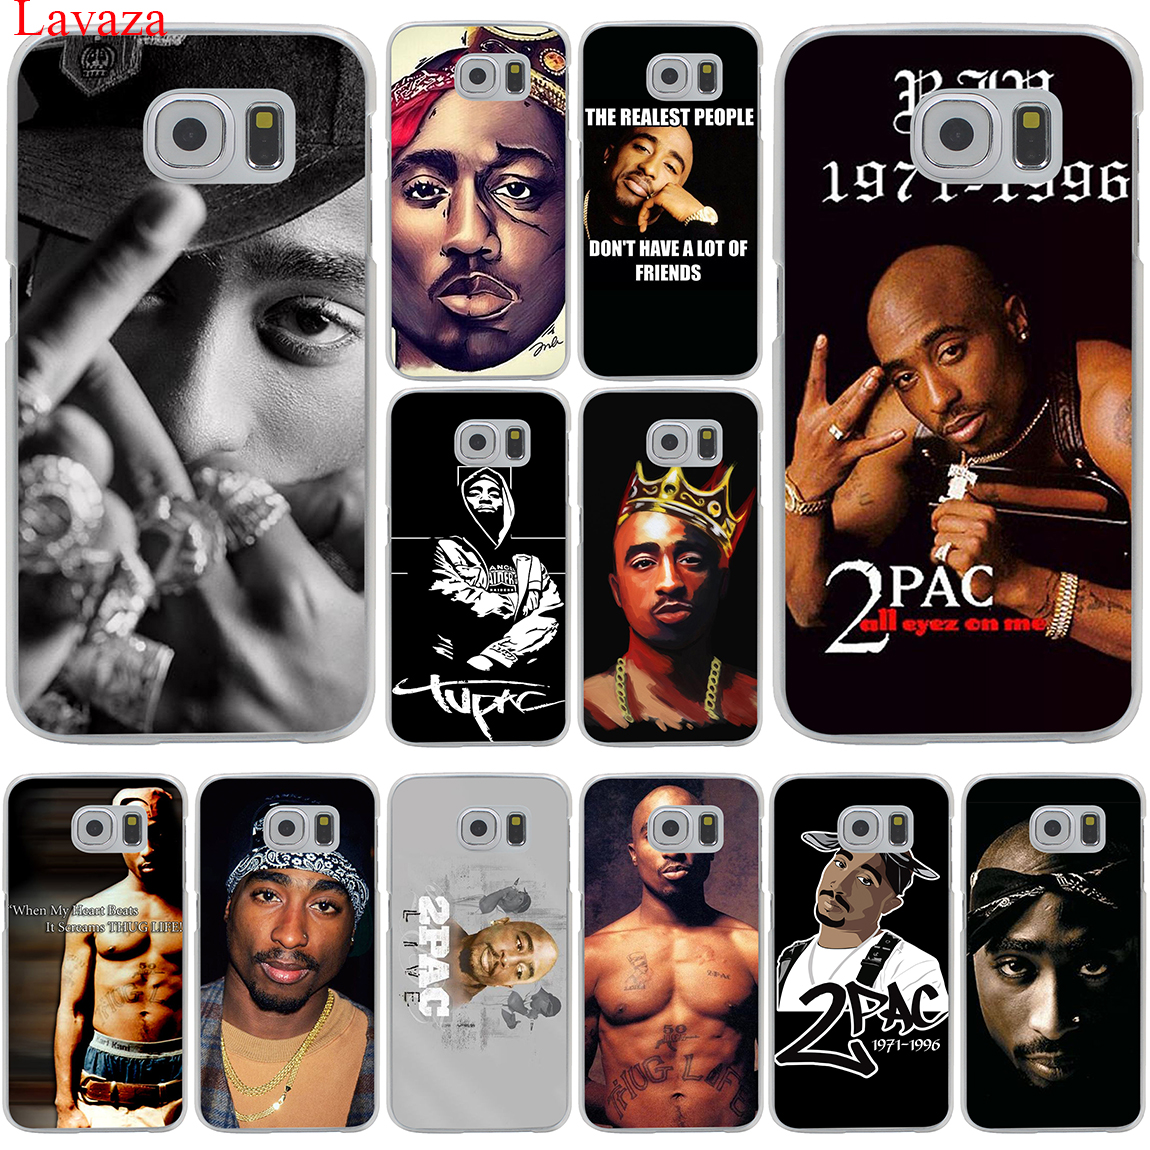 2pac Tupac Amaru Shakur Hard Phone Cover Case For Samsung Galaxy S6 7 Edge S8 9 10 Plus M10 20 30 Cellphones & Telecommunications Half-wrapped Case